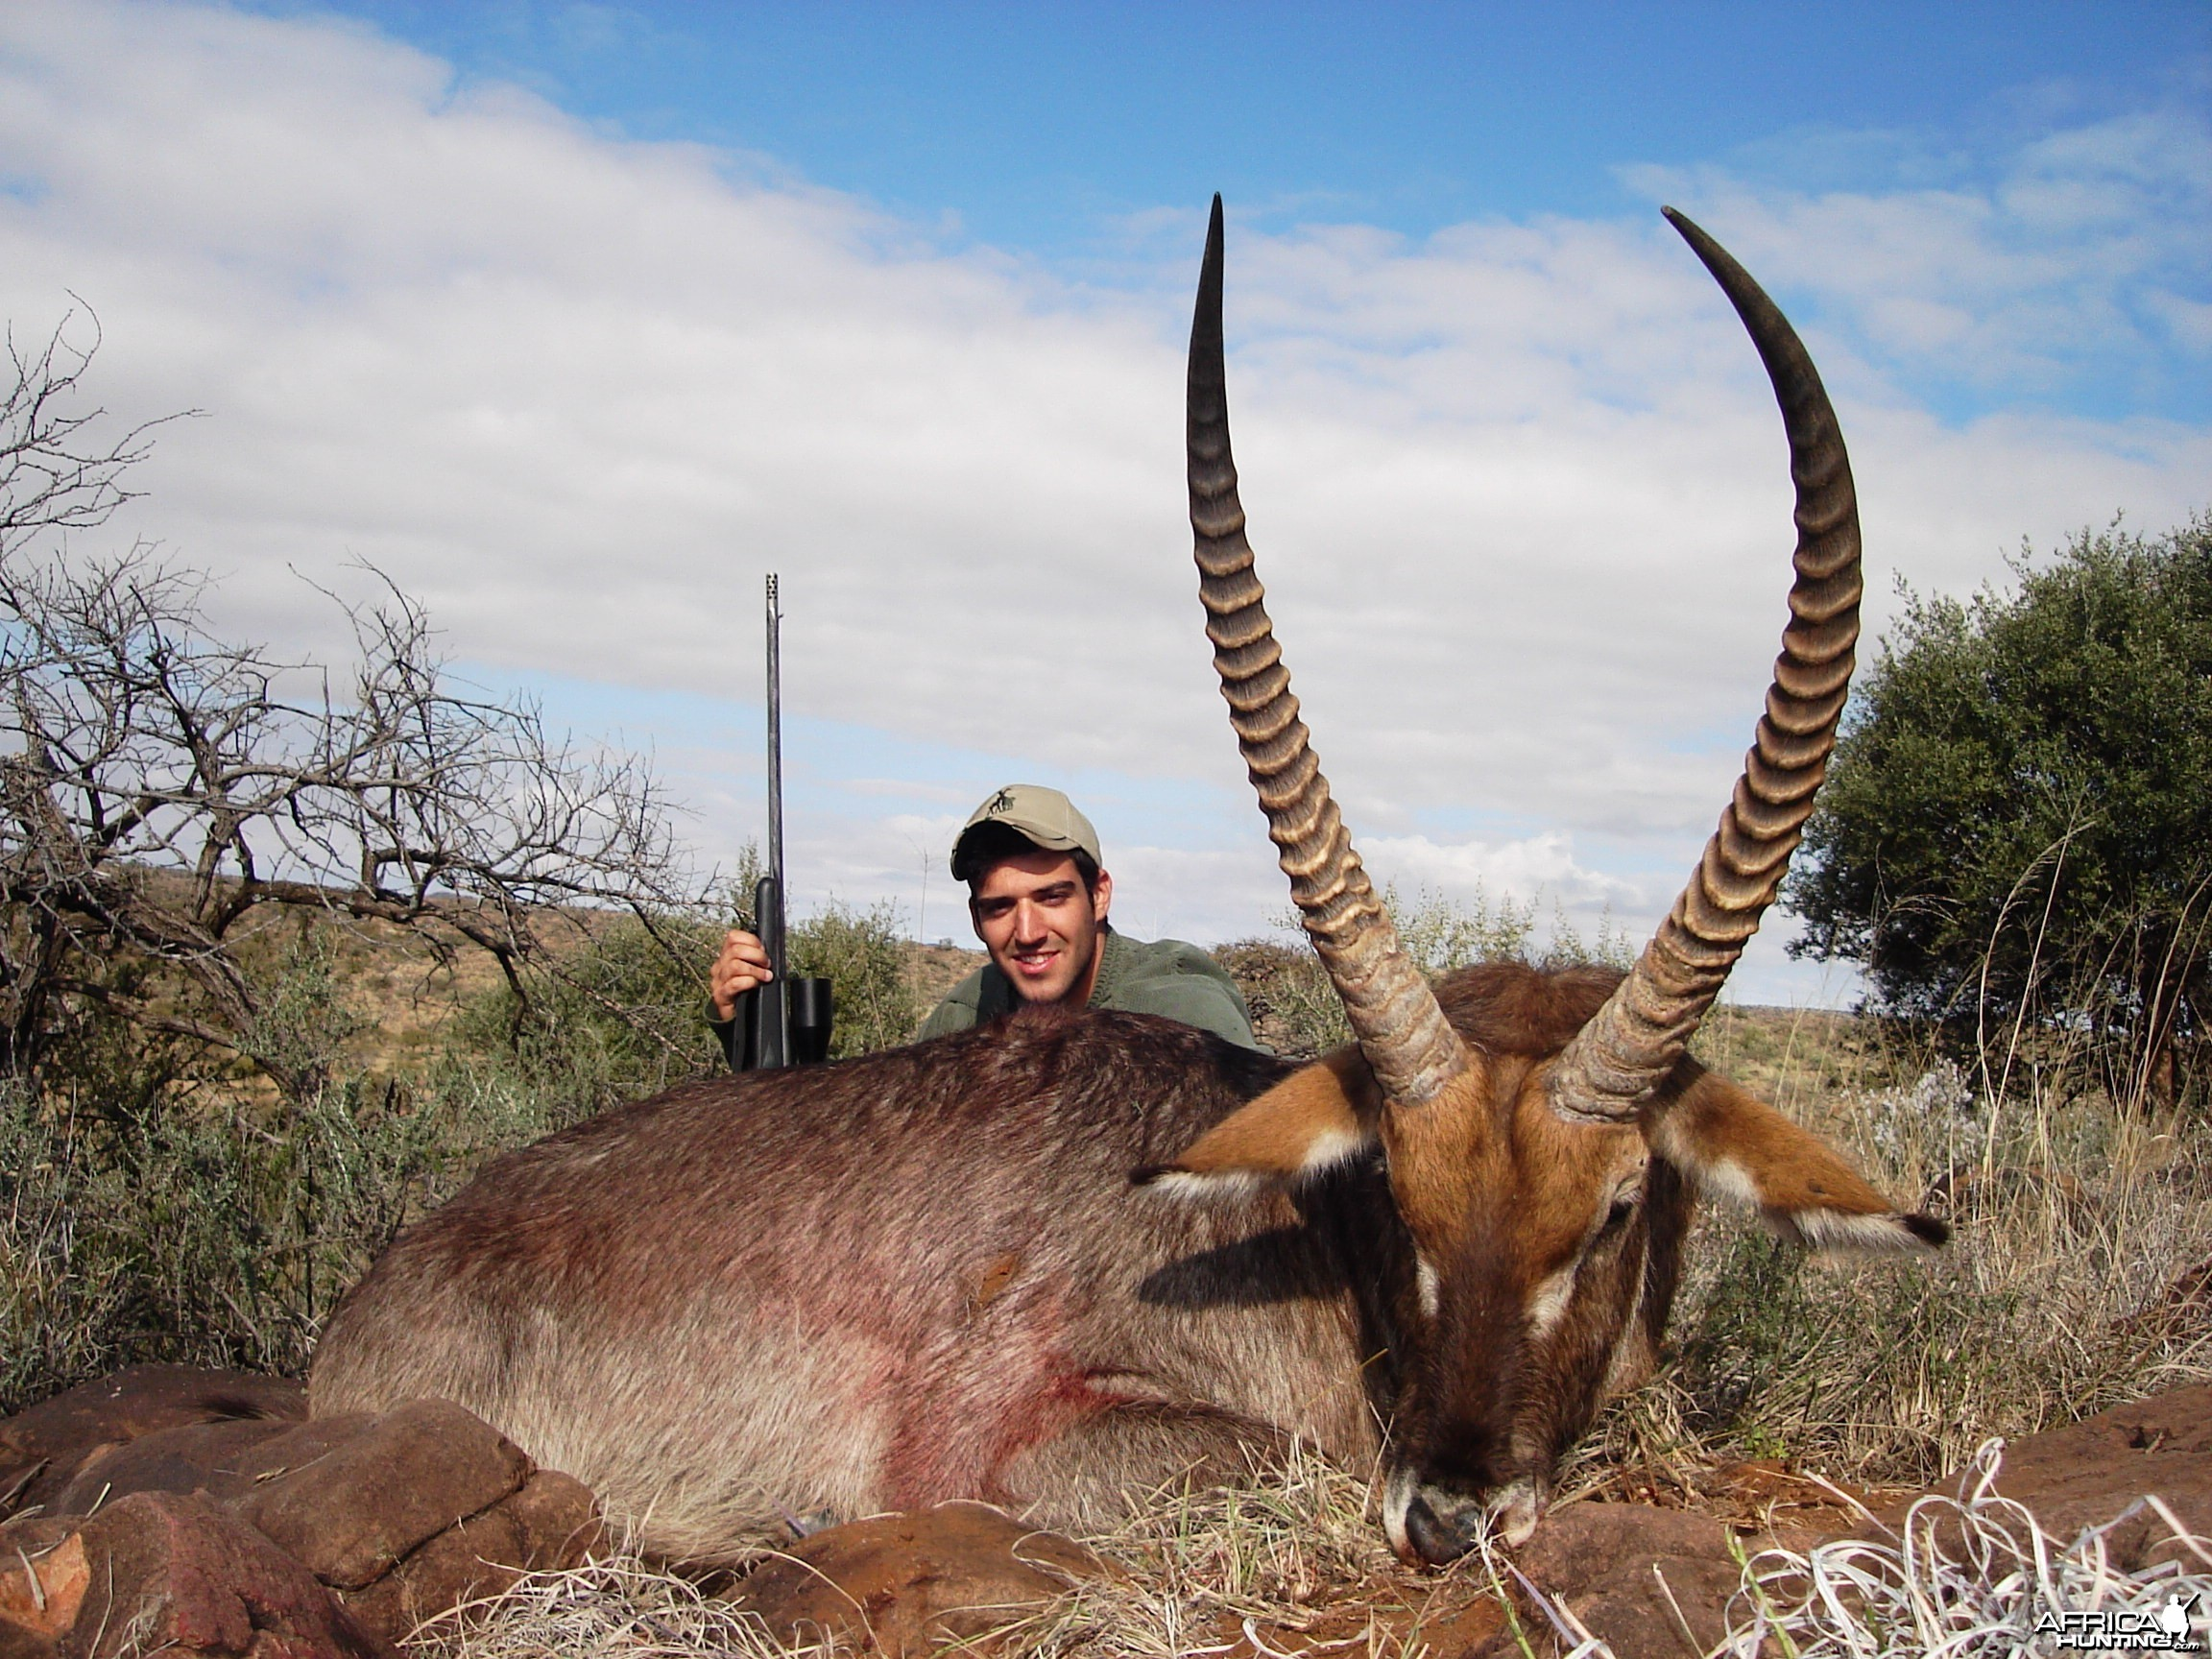 Hunting Waterbuck with Wintershoek Johnny Vivier Safaris in SA